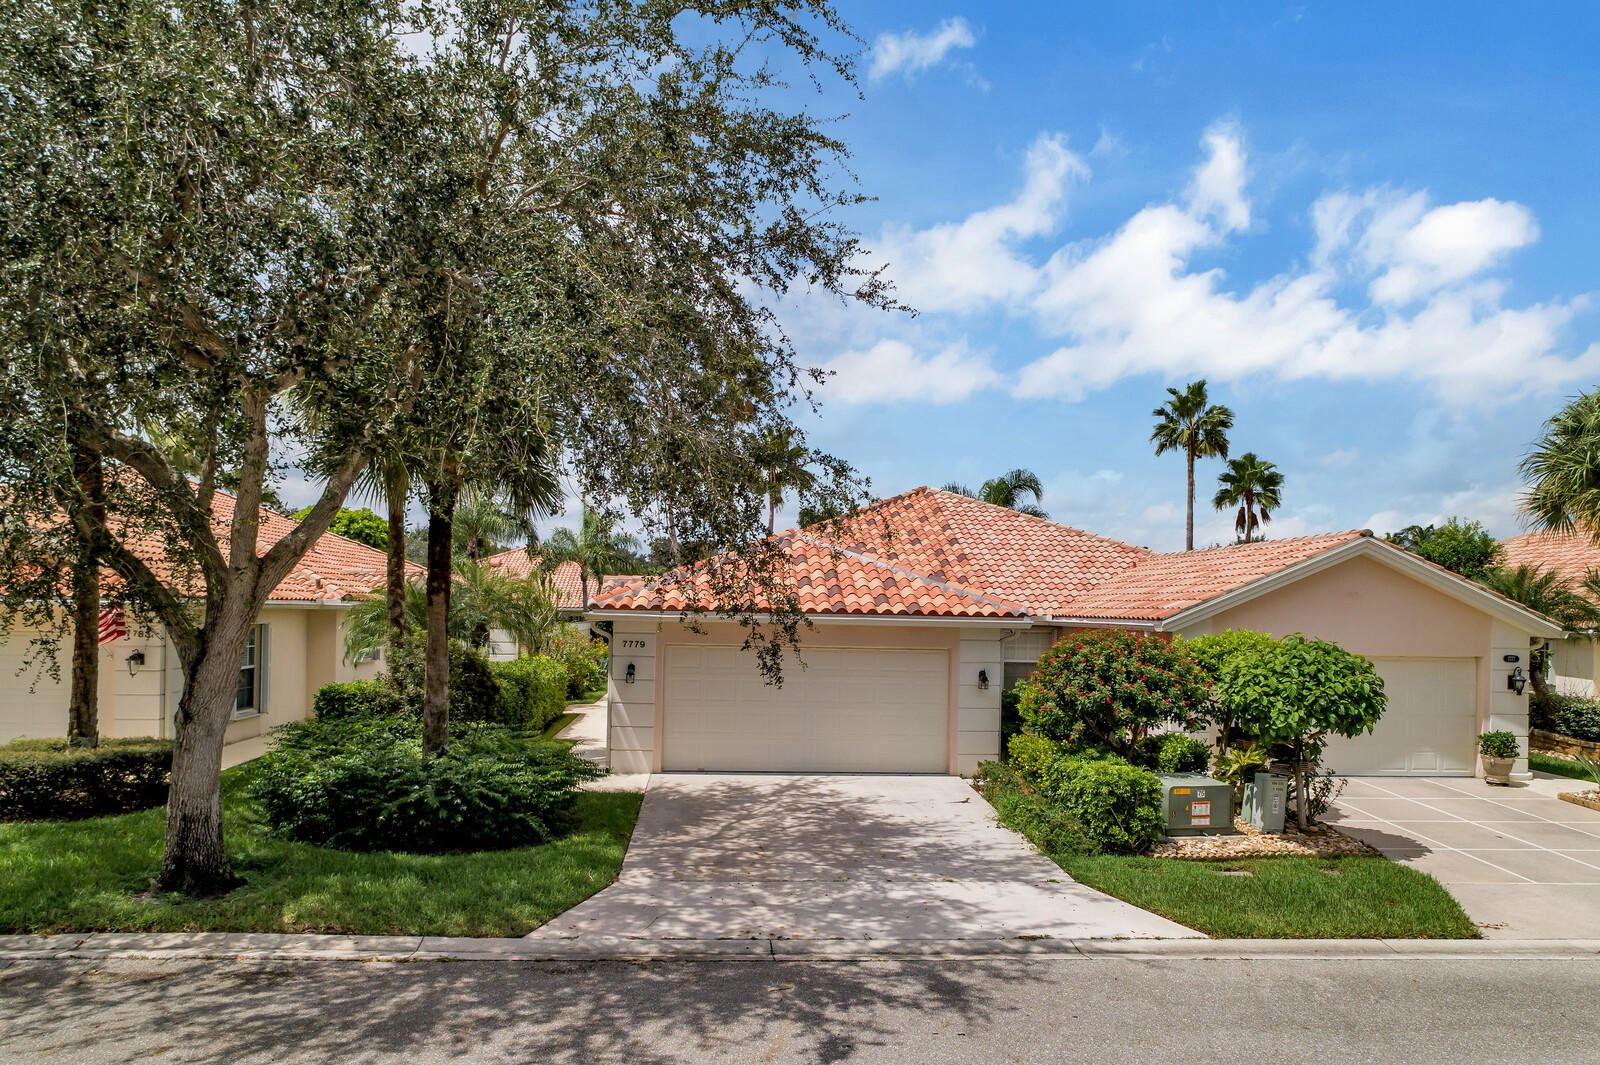 7779 Nile River Road, West Palm Beach, FL 33411 - #: RX-10656560